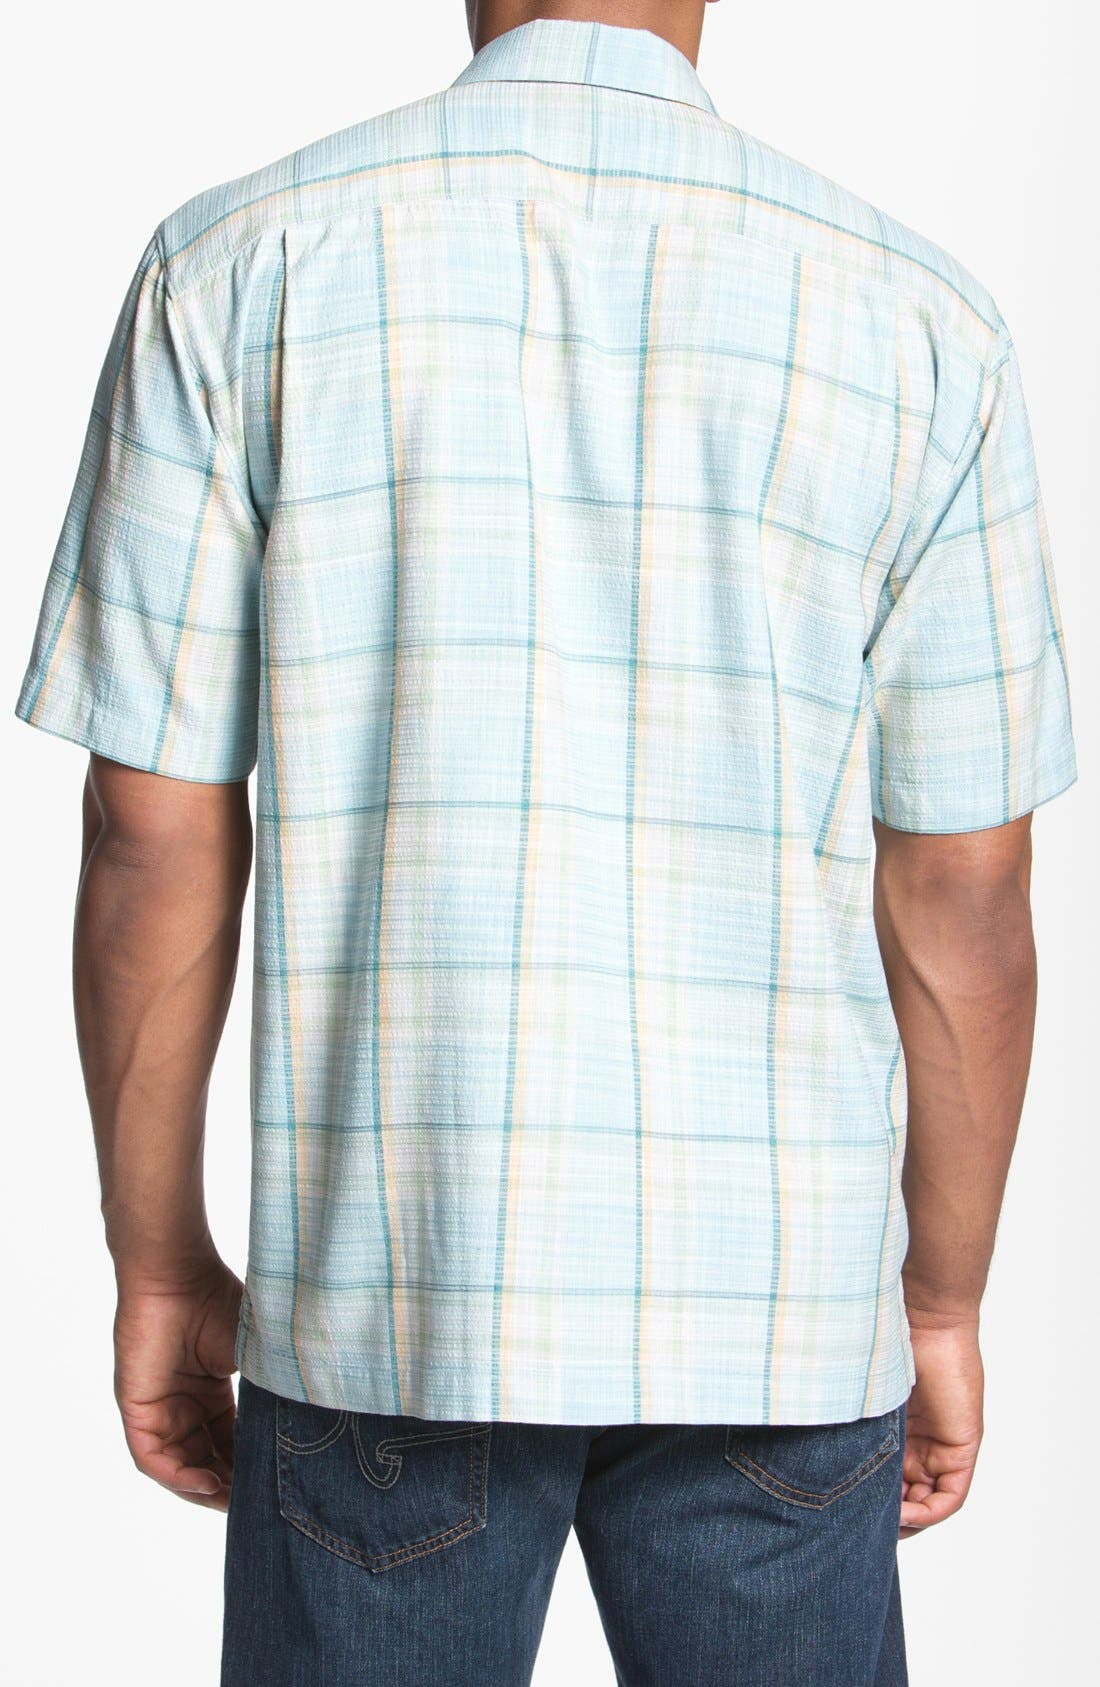 Alternate Image 2  - Tommy Bahama 'Plaid Manners' Campshirt